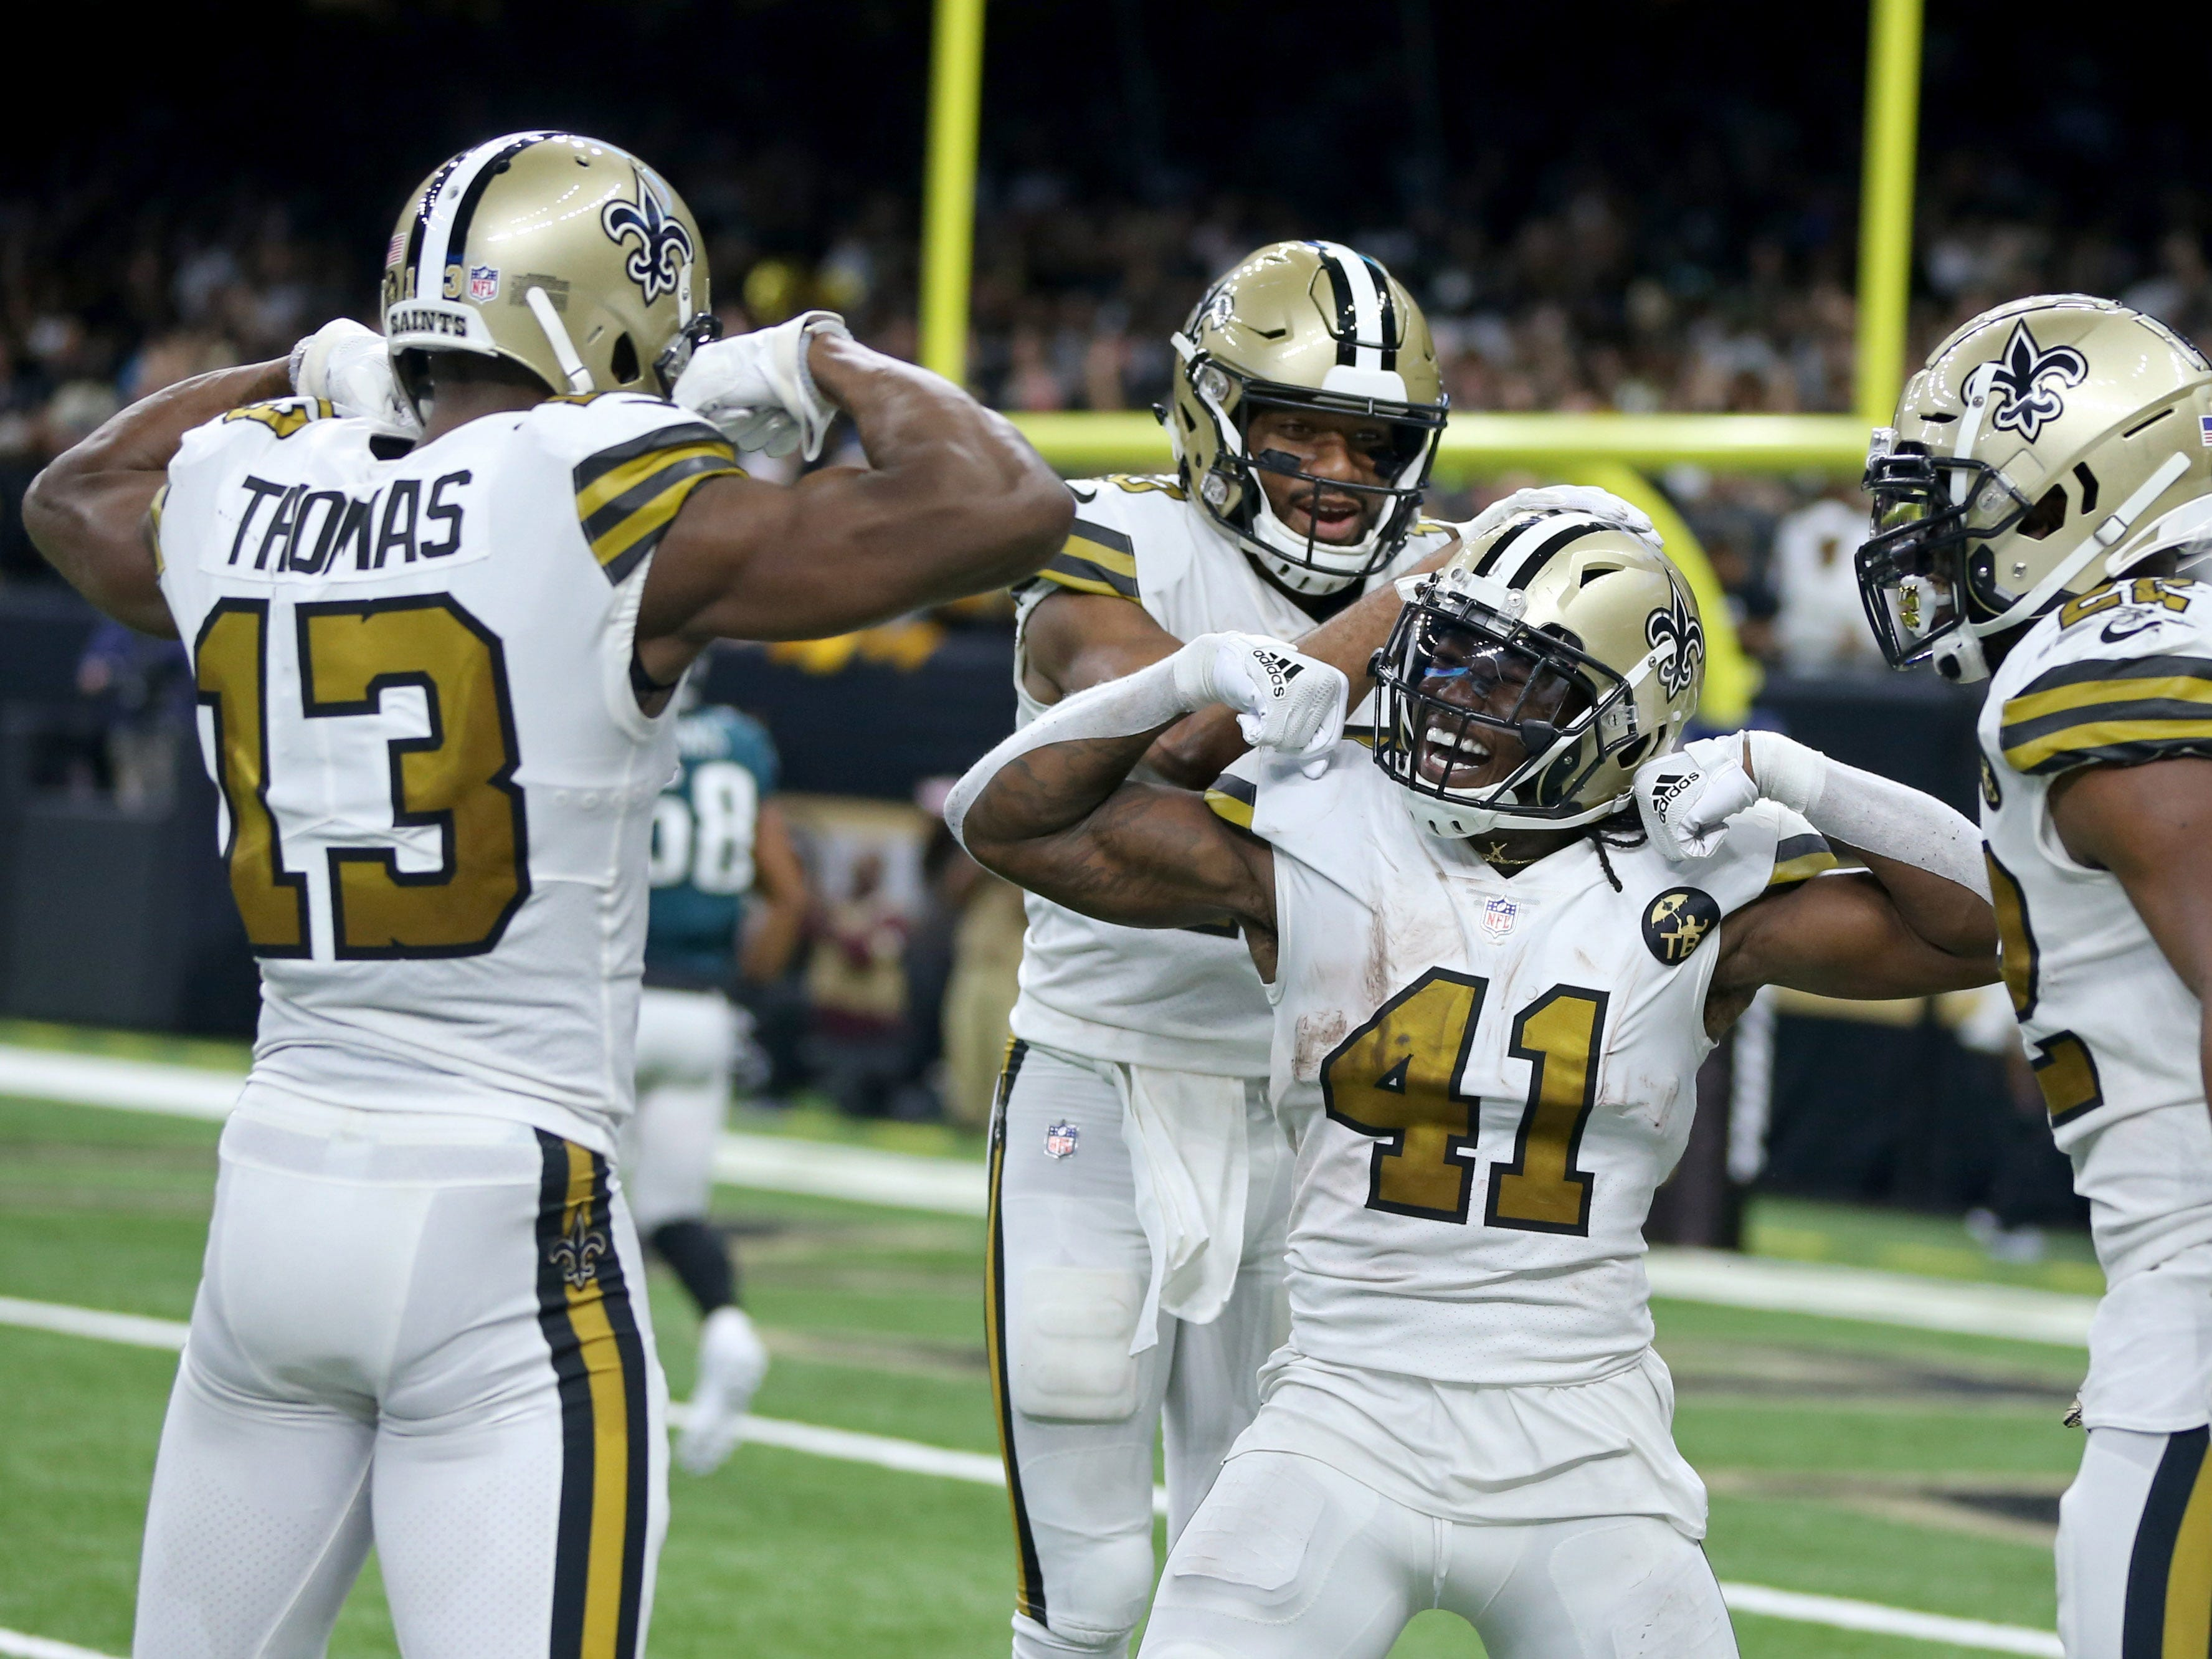 1. Saints (1): Post a seventh 40-burger, and they'll set record for most in any season. Scoring standard of 2013 Broncos (606 points) also within reach.